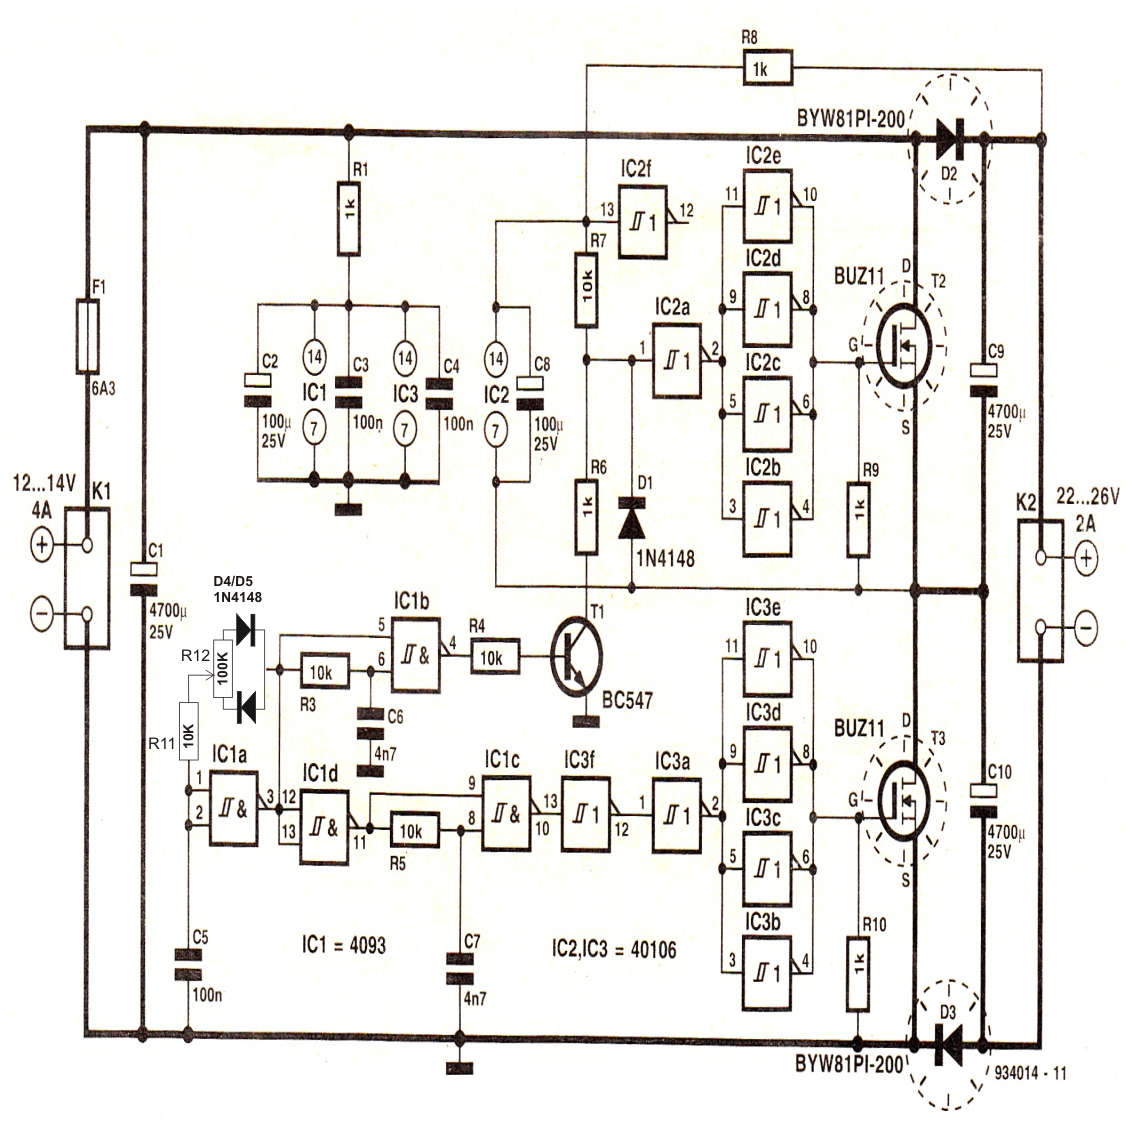 automatic 12v car battery charger circuit diagram 7 way connector wiring charging a laptop from dc